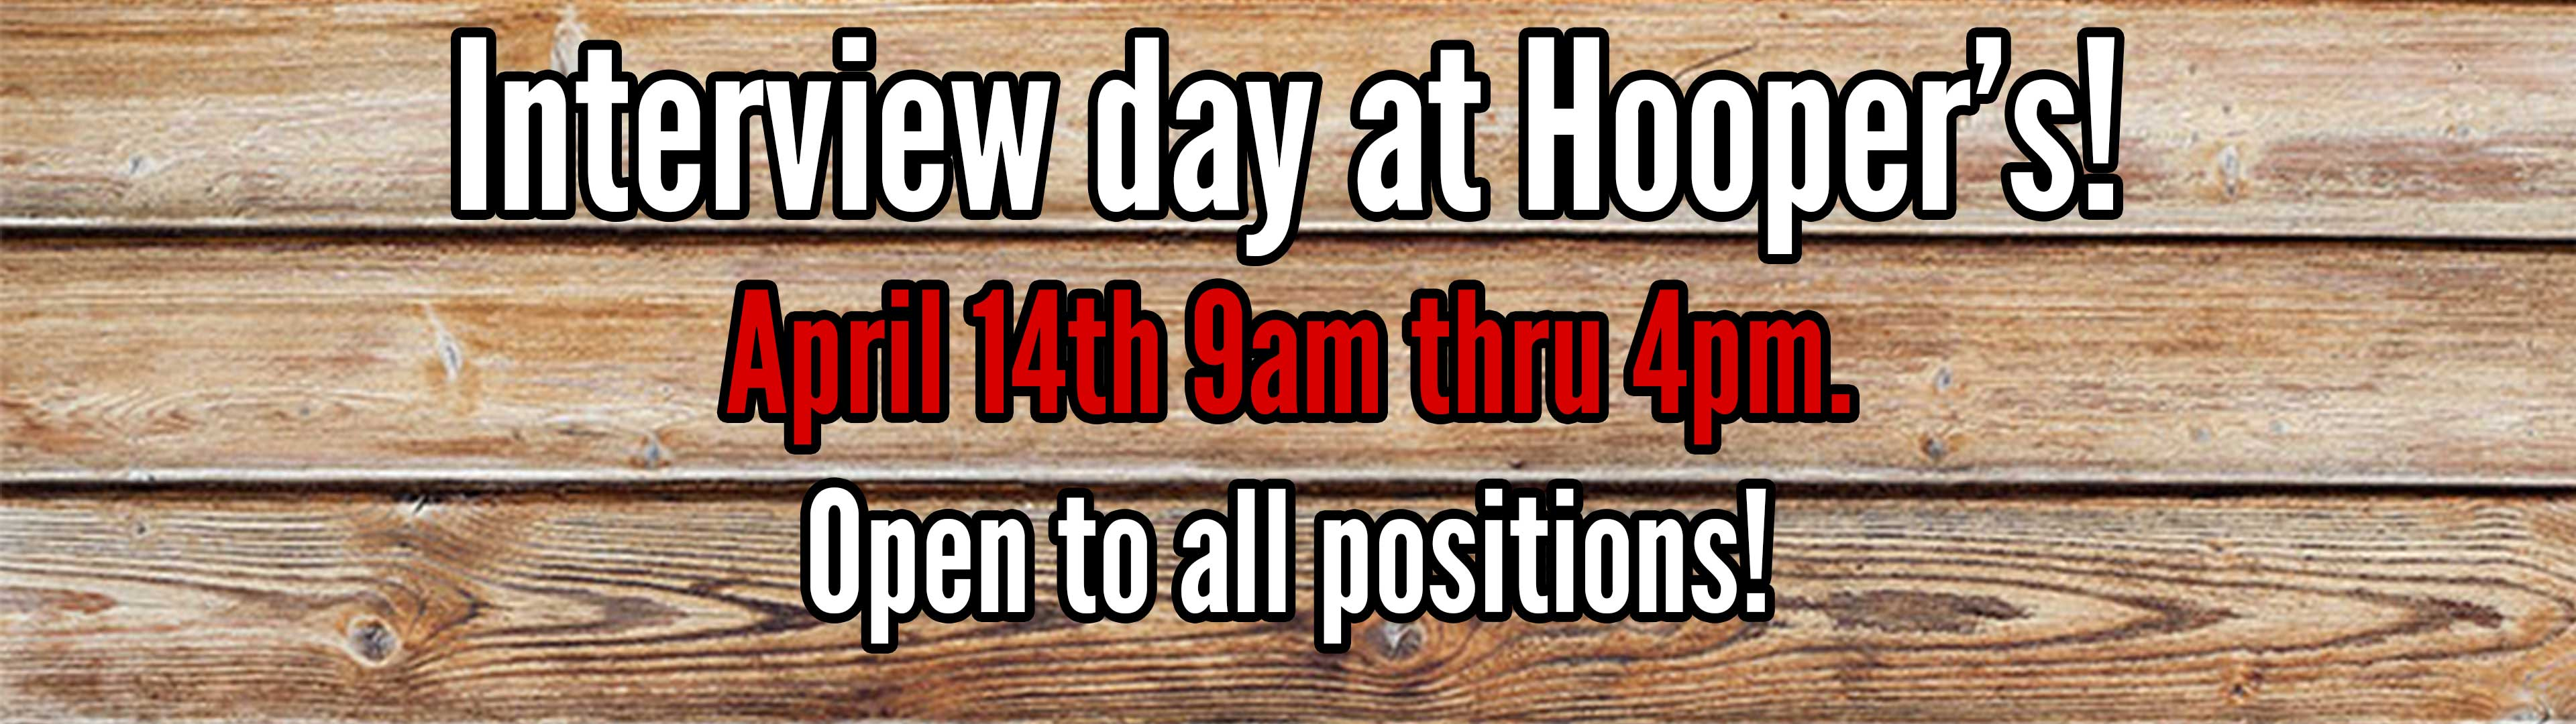 Interview Day April 14th, 9am thru 4pm